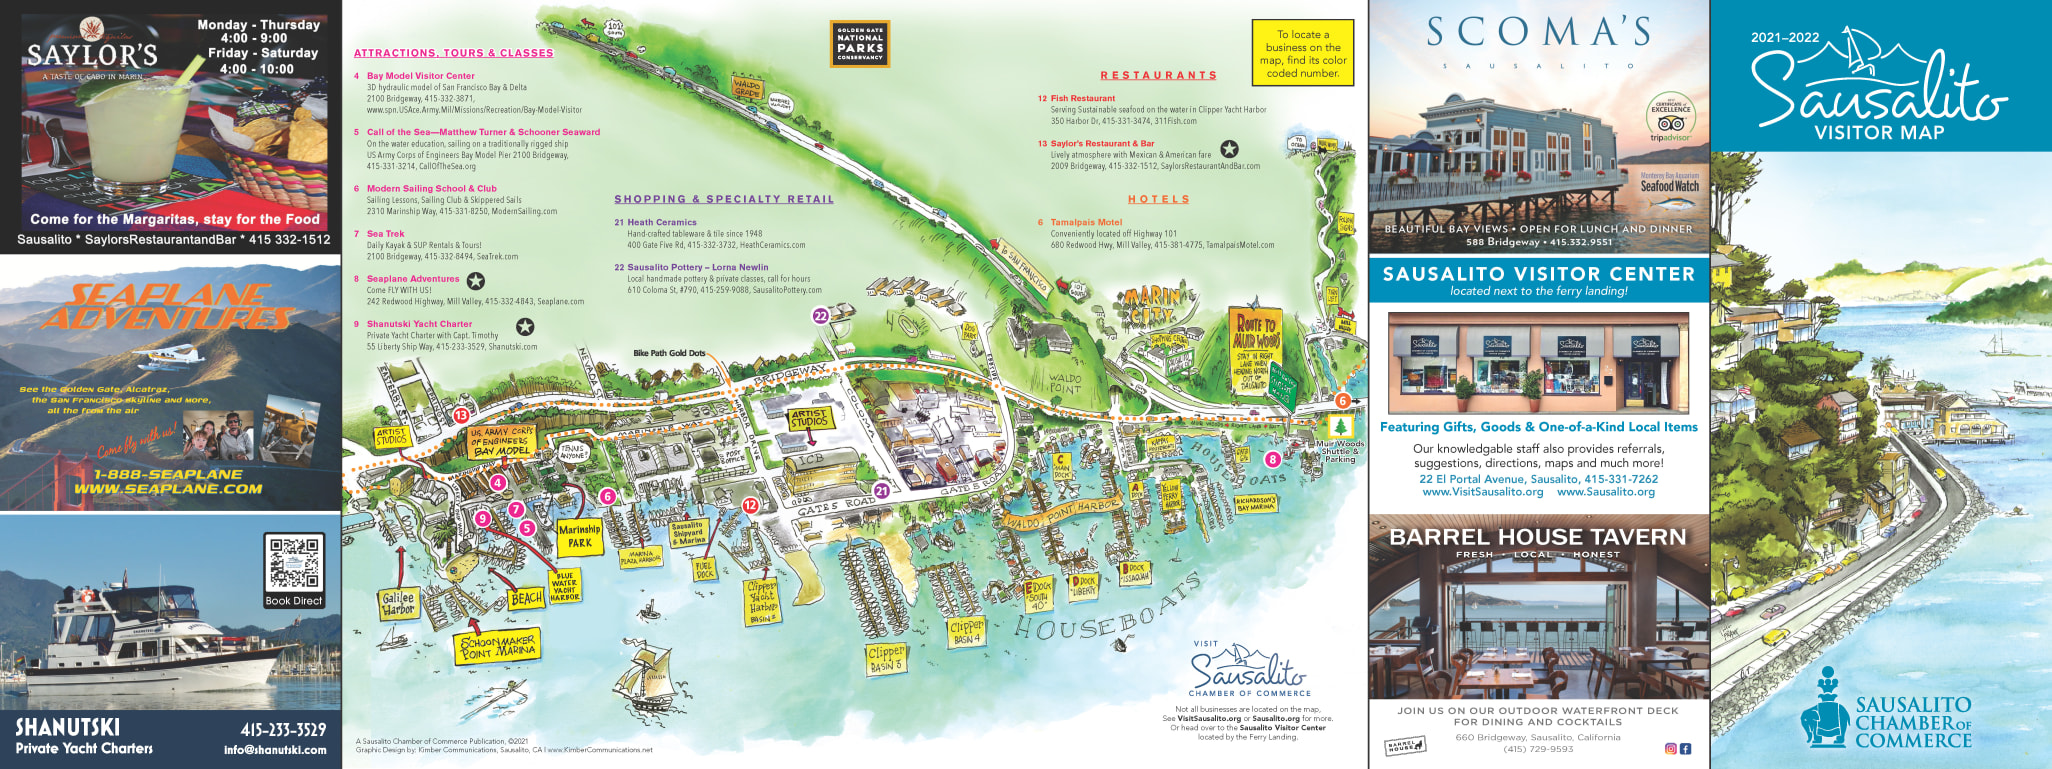 2021-2022 Visitor Map